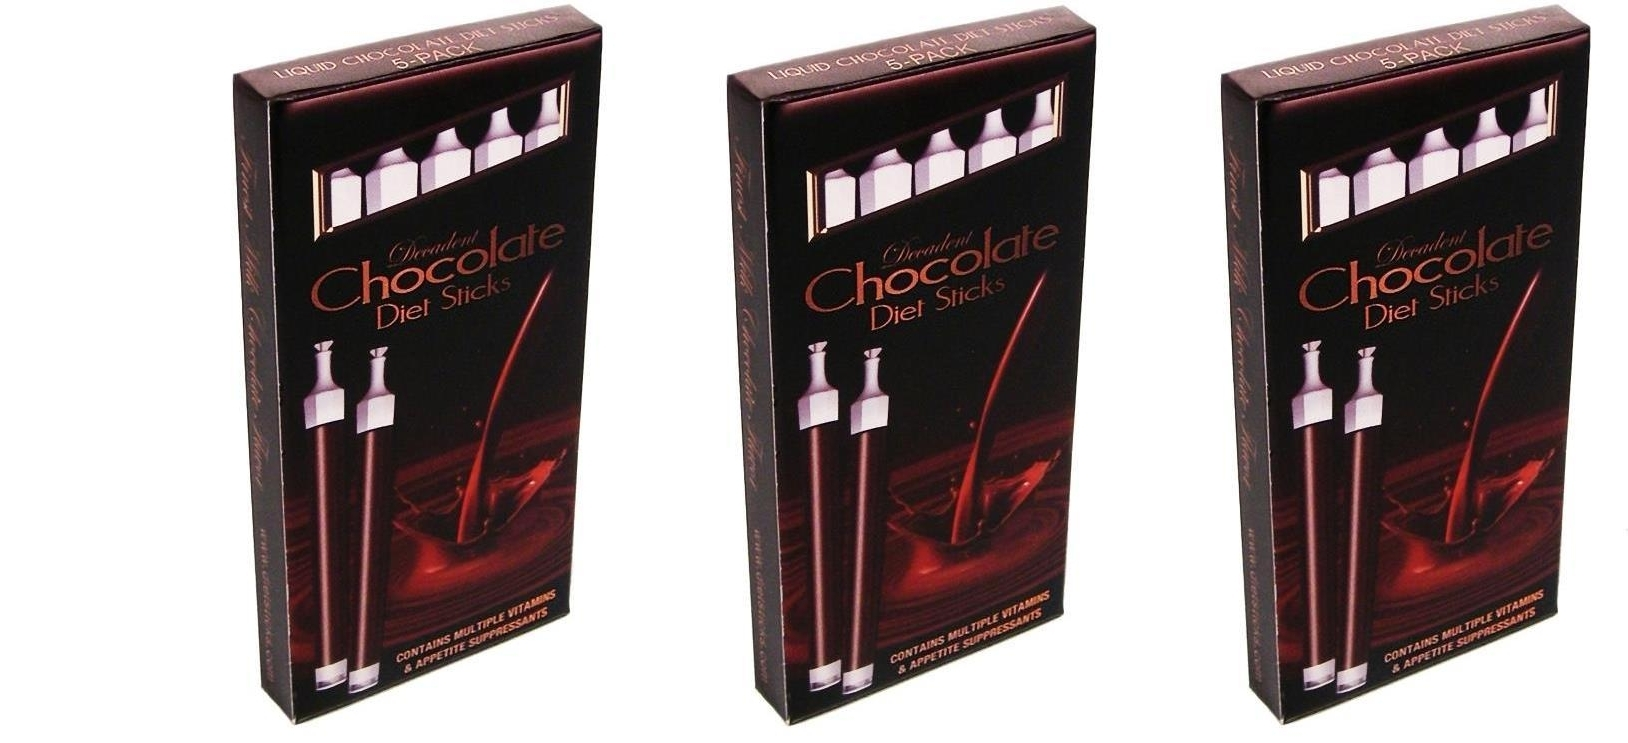 Chocolate Diet Sticks: Healthy and Delicious! | Indiegogo